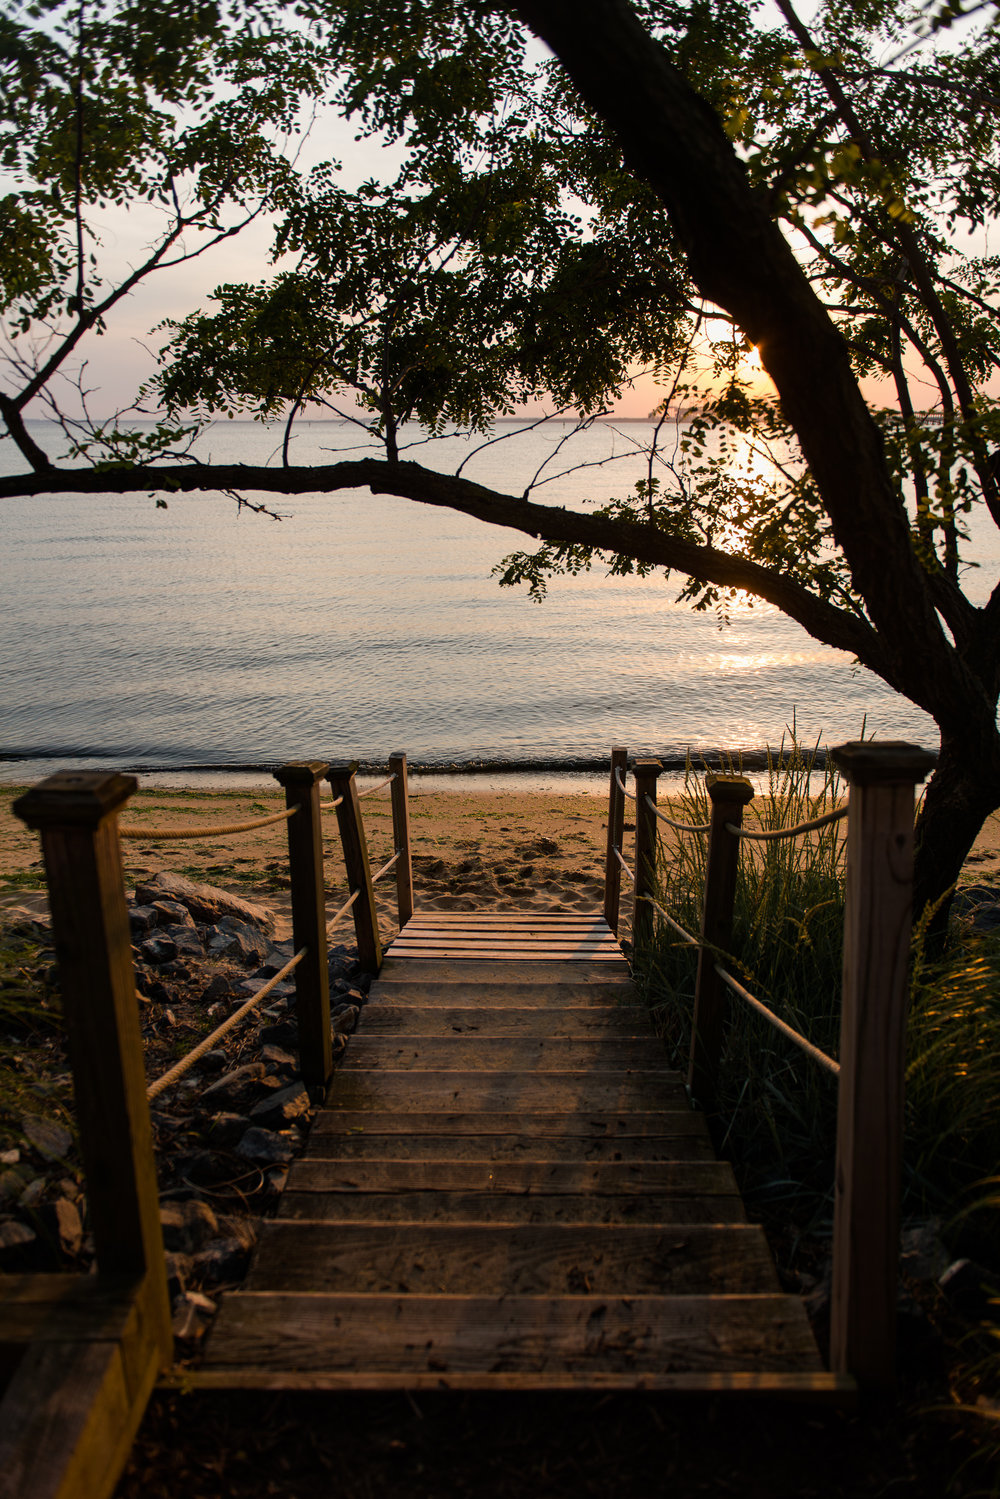 A set of wooden stairs leading down to the beach at sunset at the chesapeake bay beach club in stevensville, md